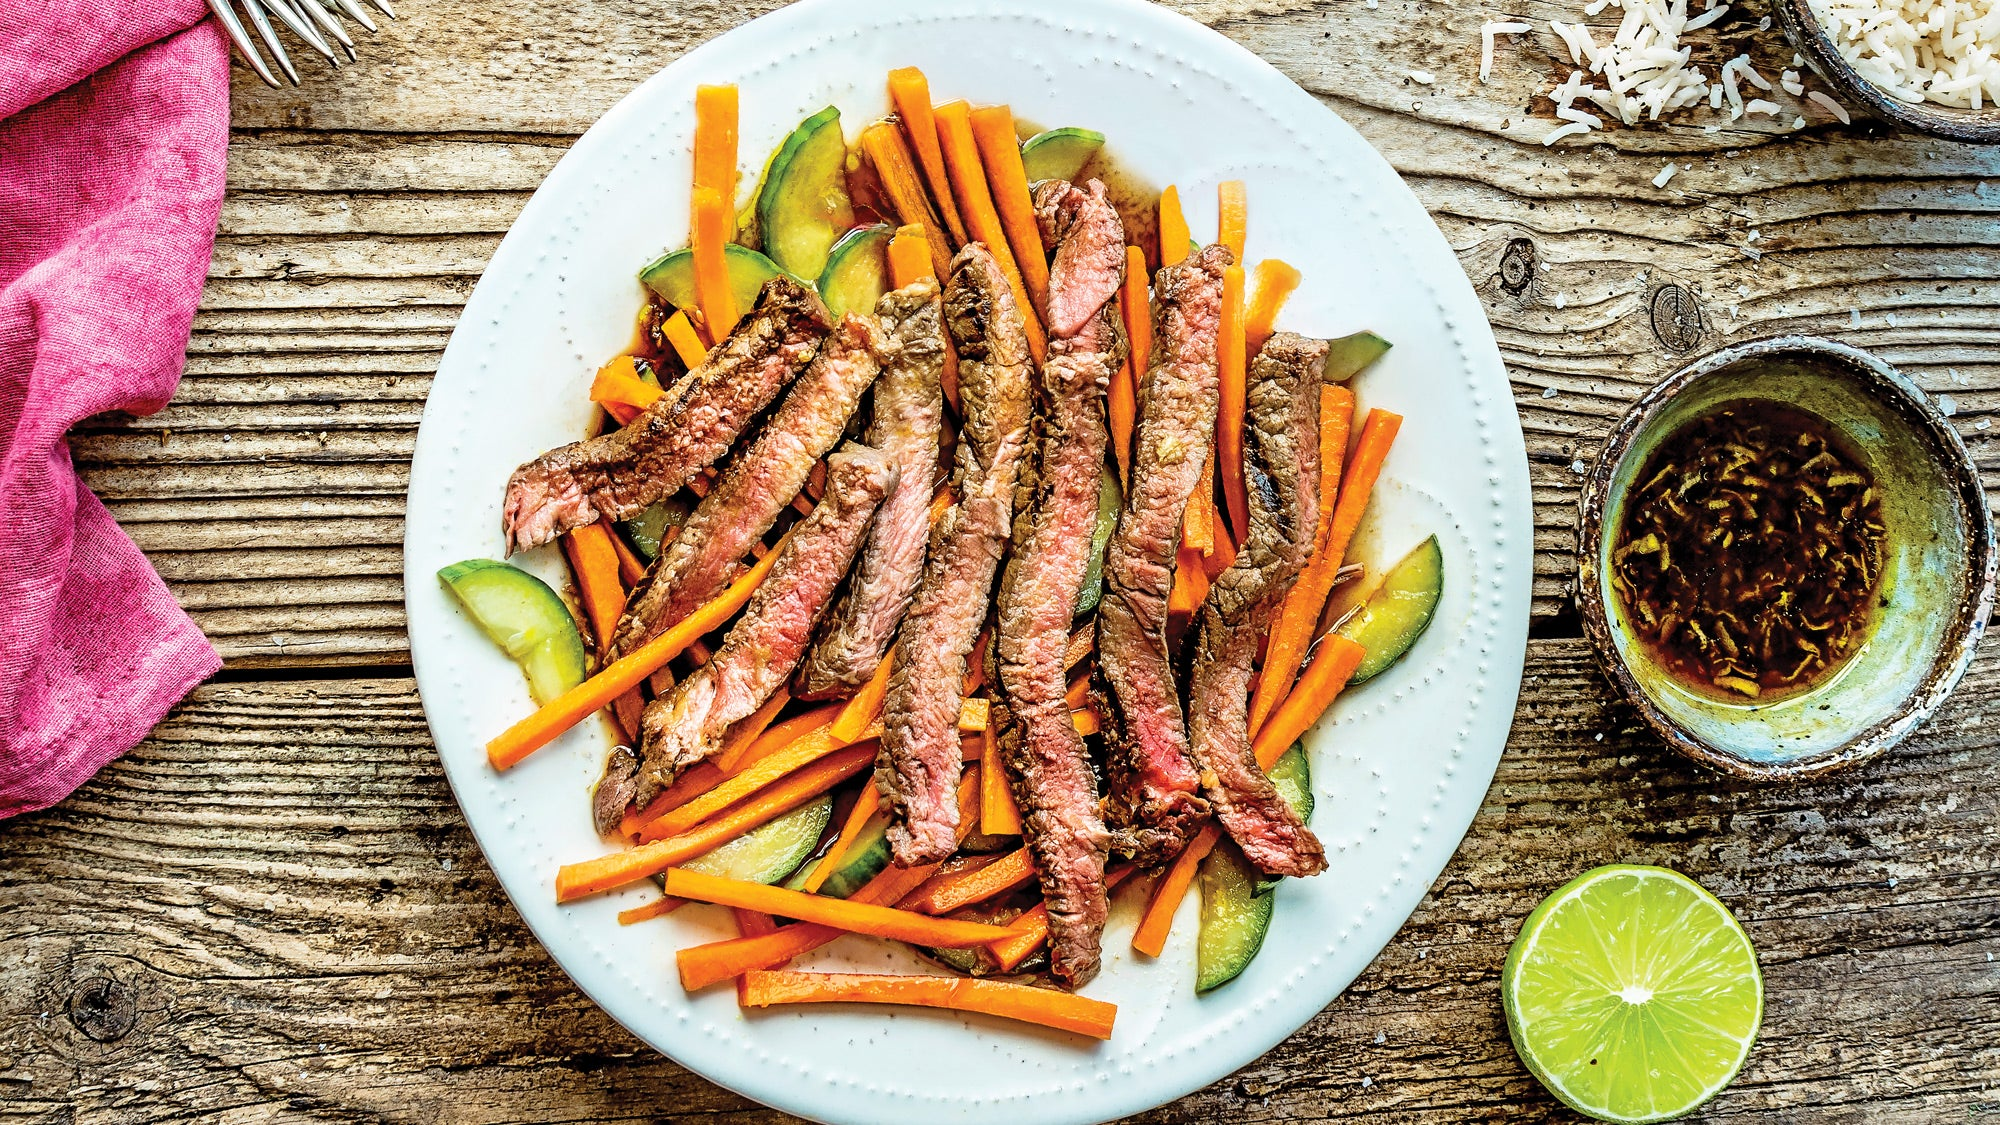 Vietnamese Banh Mi–Style Steak with Pickled Vegetables recipe